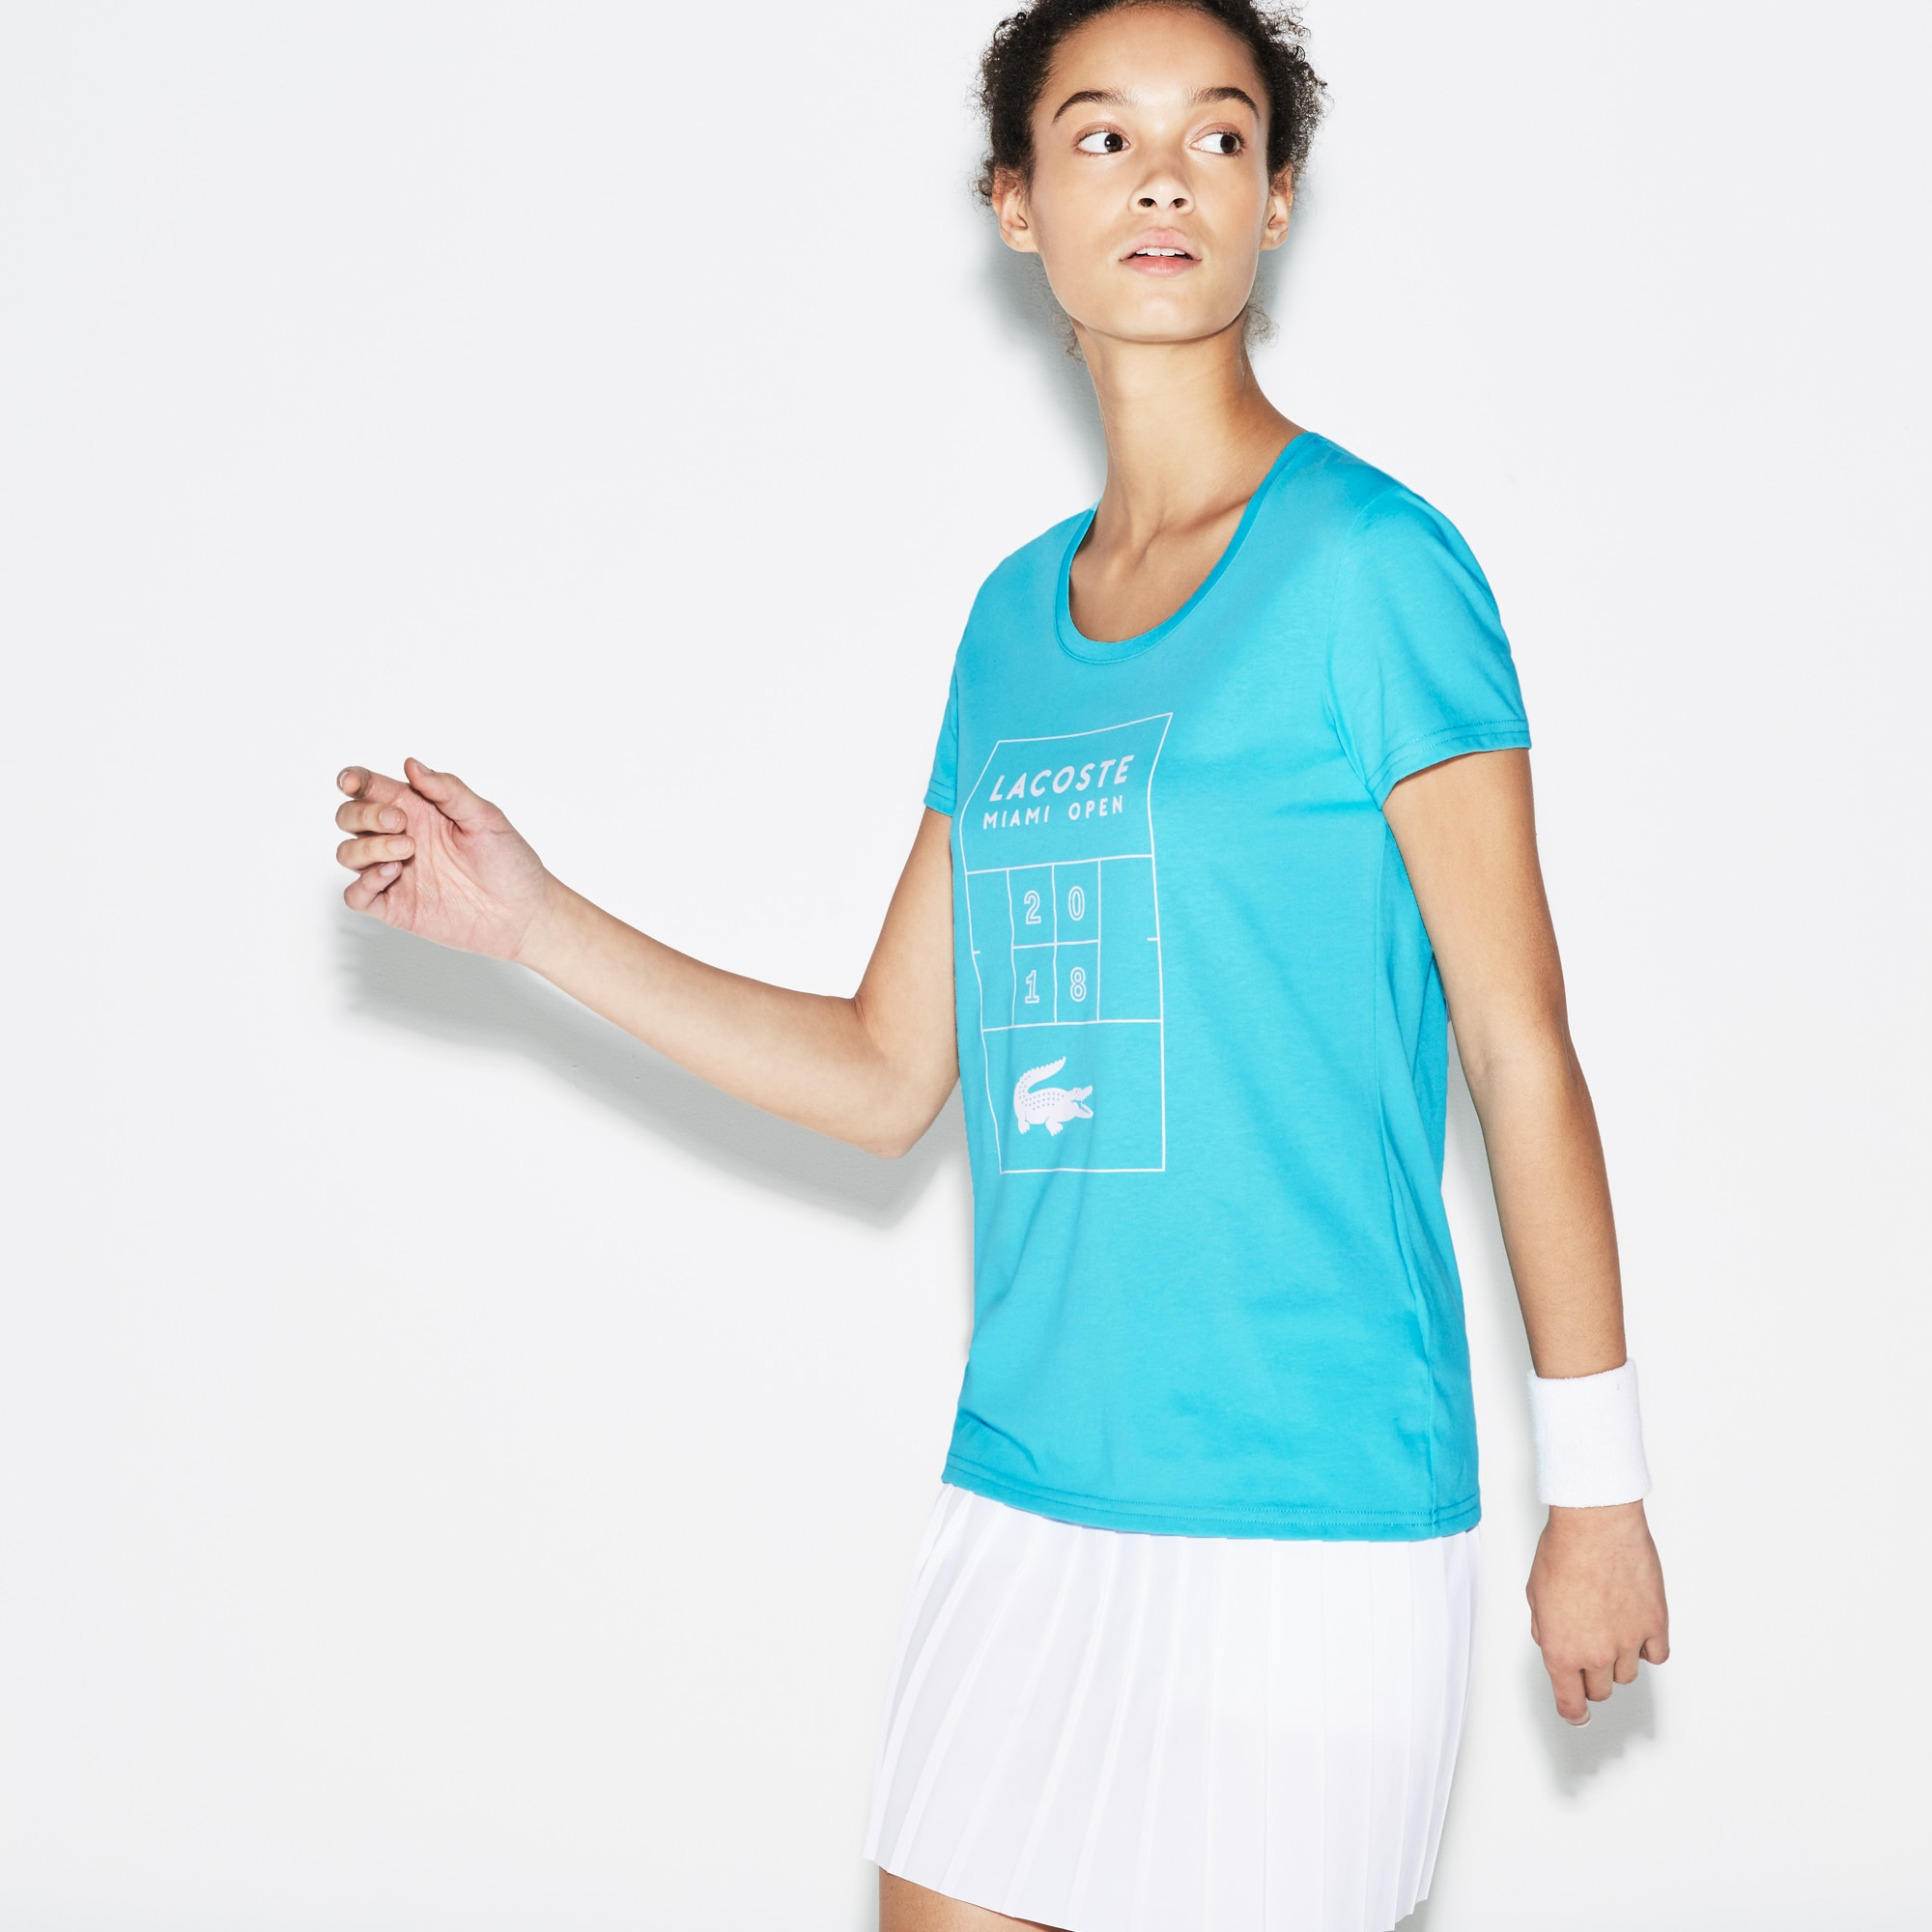 Women's SPORT Miami Open Print Tech Jersey Tennis T-shirt